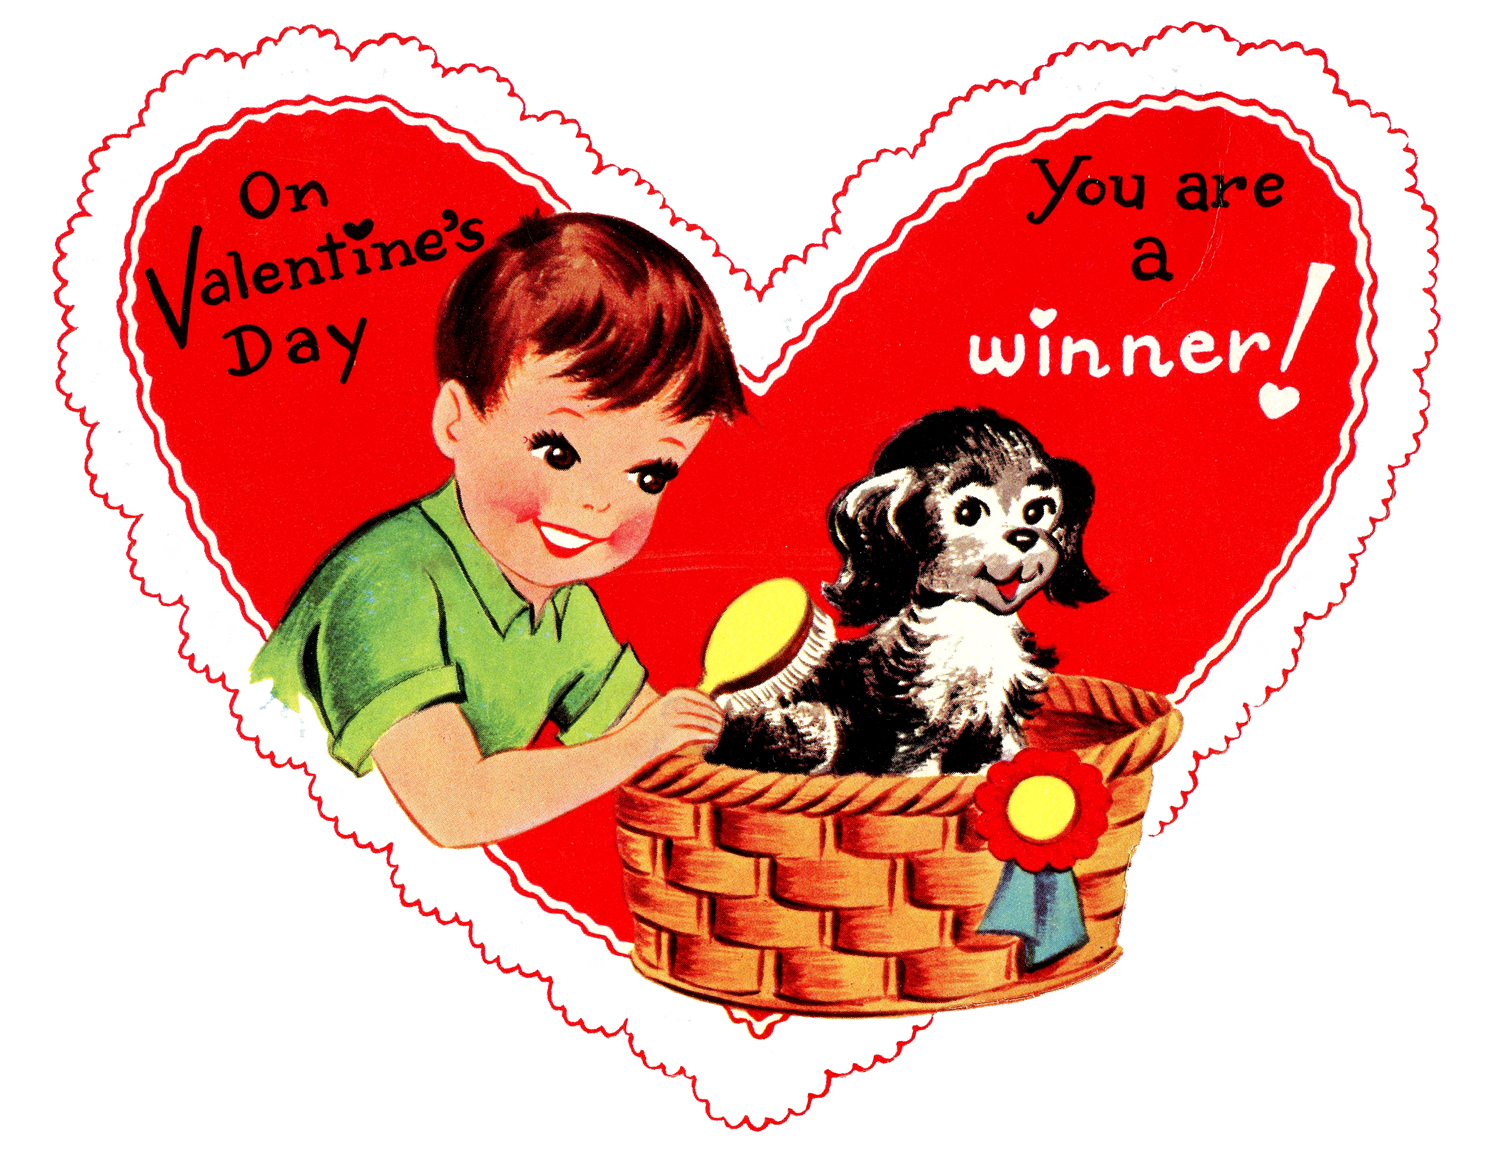 Retro Valentines Graphic Cute Boy With Pup The